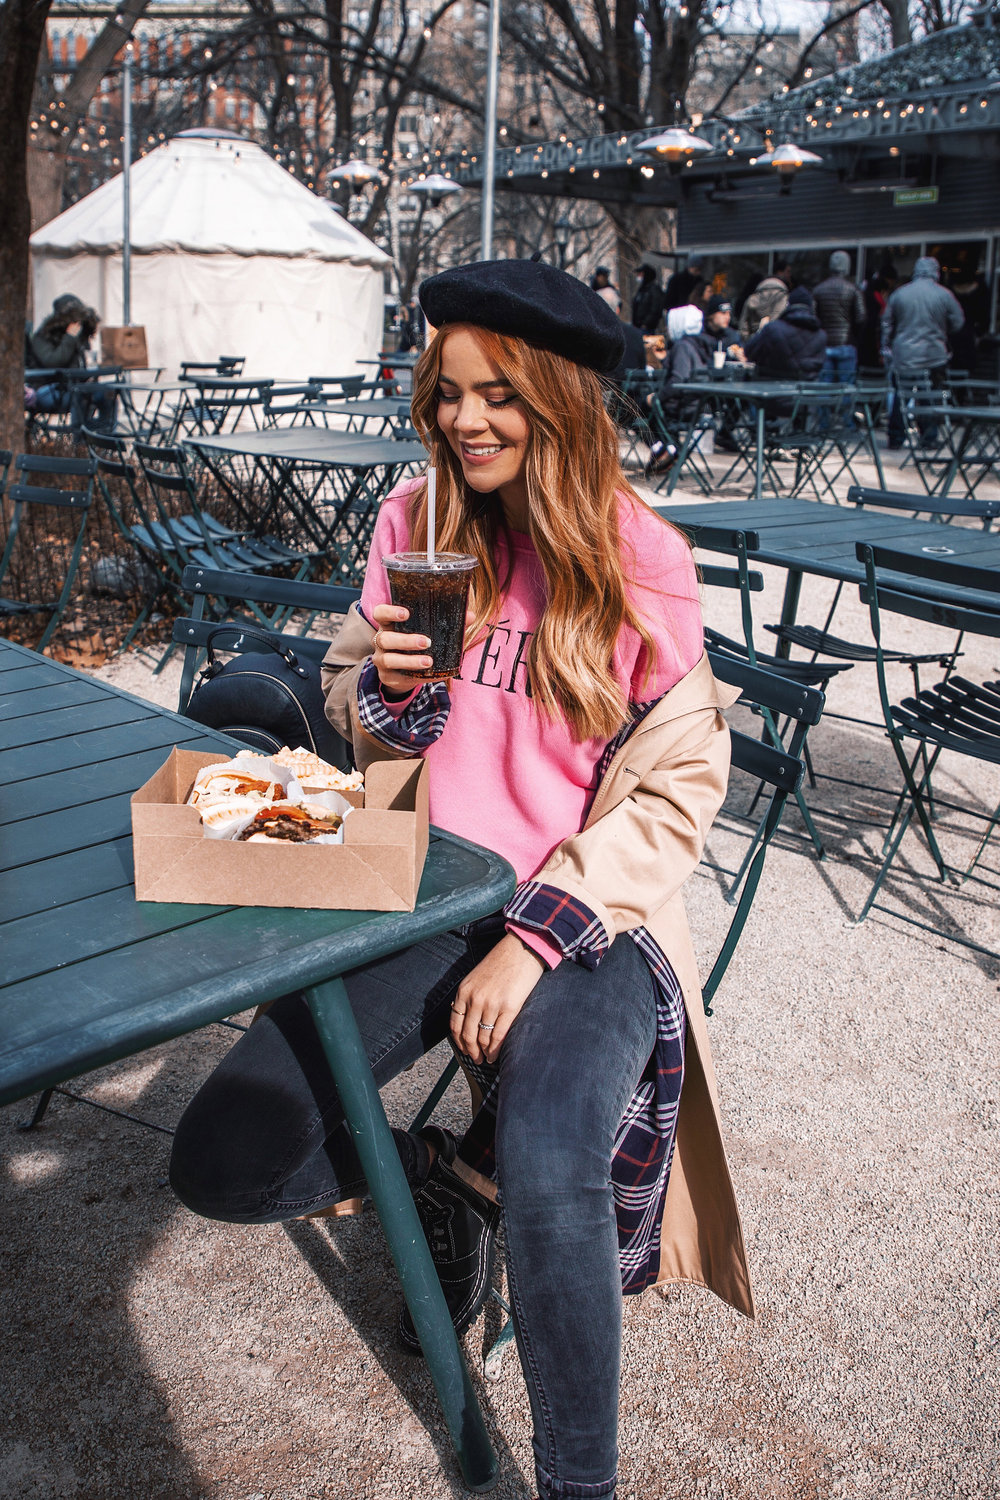 what-to-wear-new-york-city-winter-outfits_2.jpg